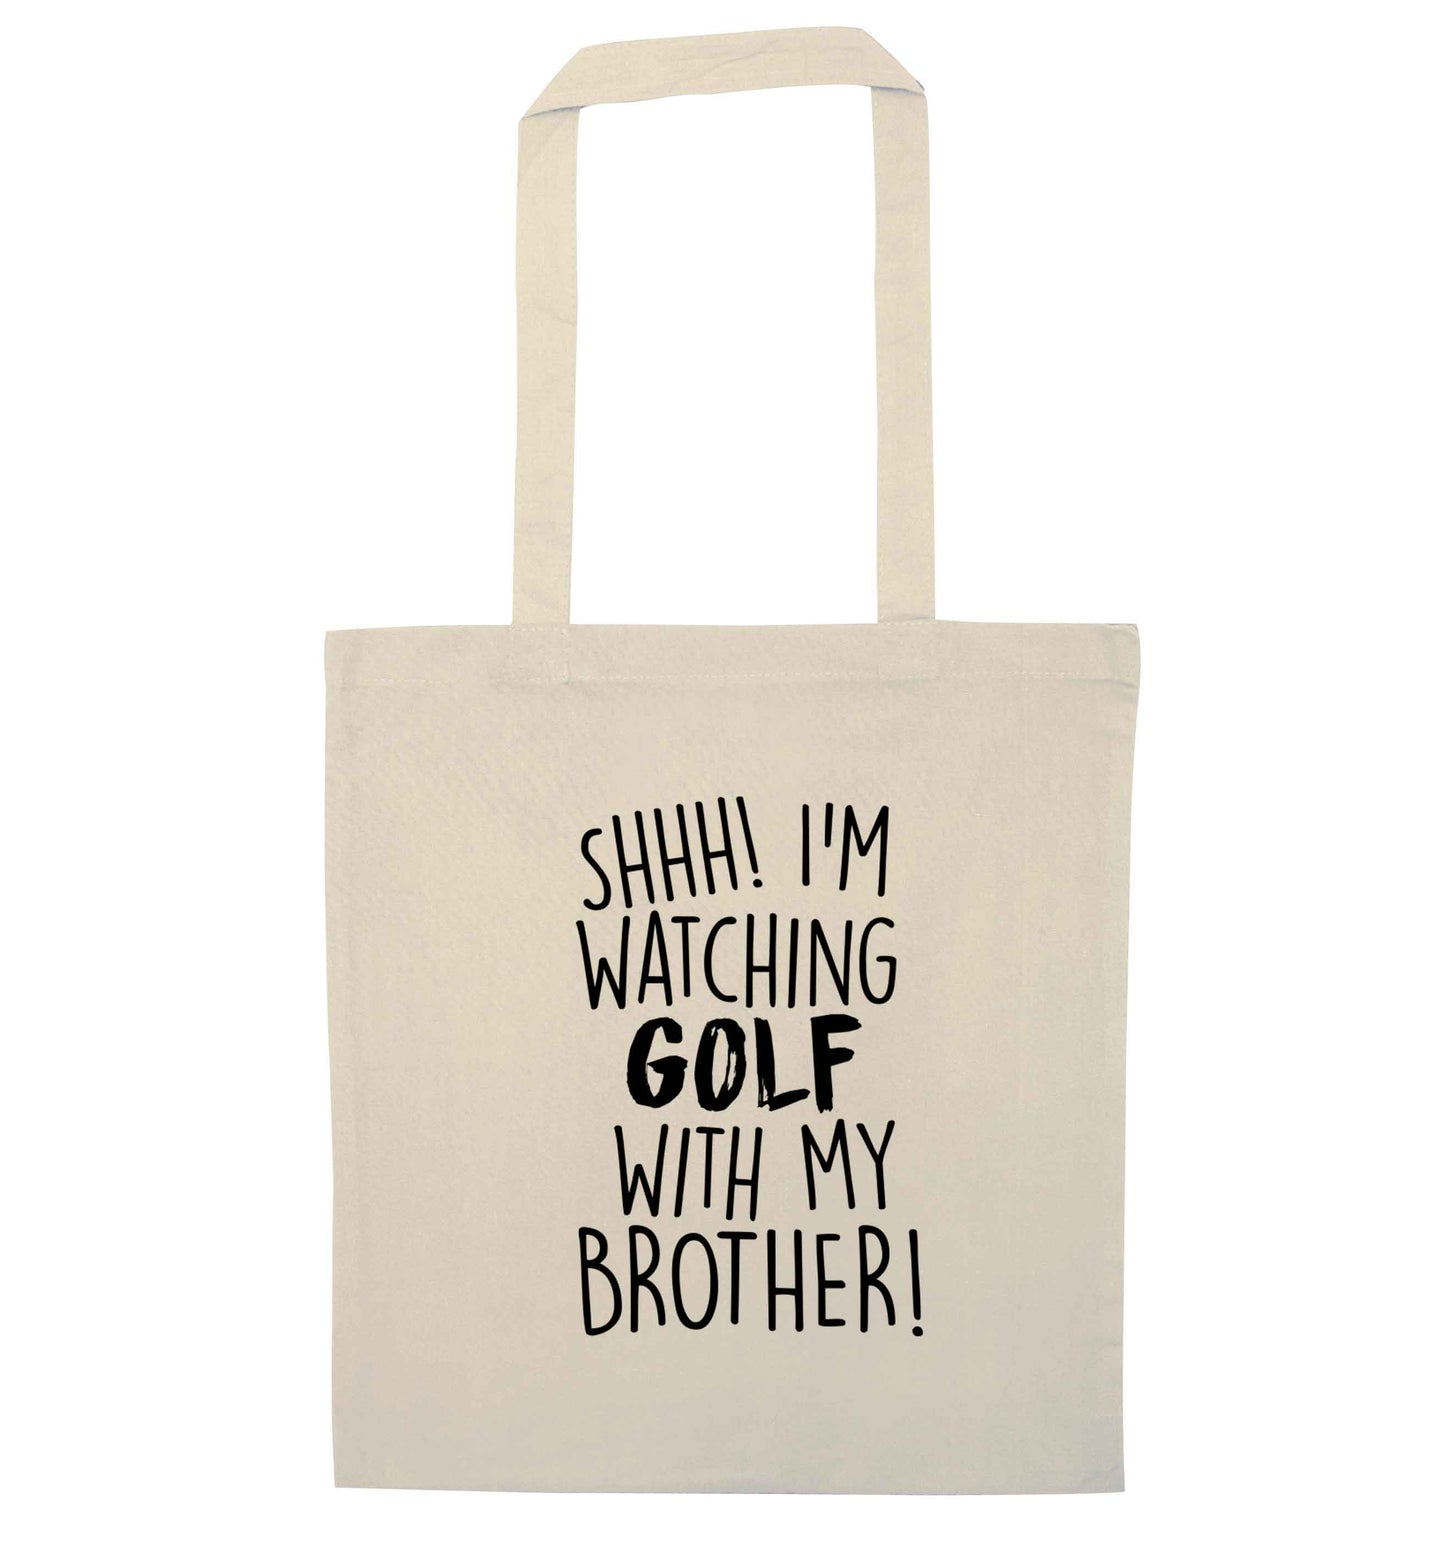 Shh I'm watching golf with my brother natural tote bag